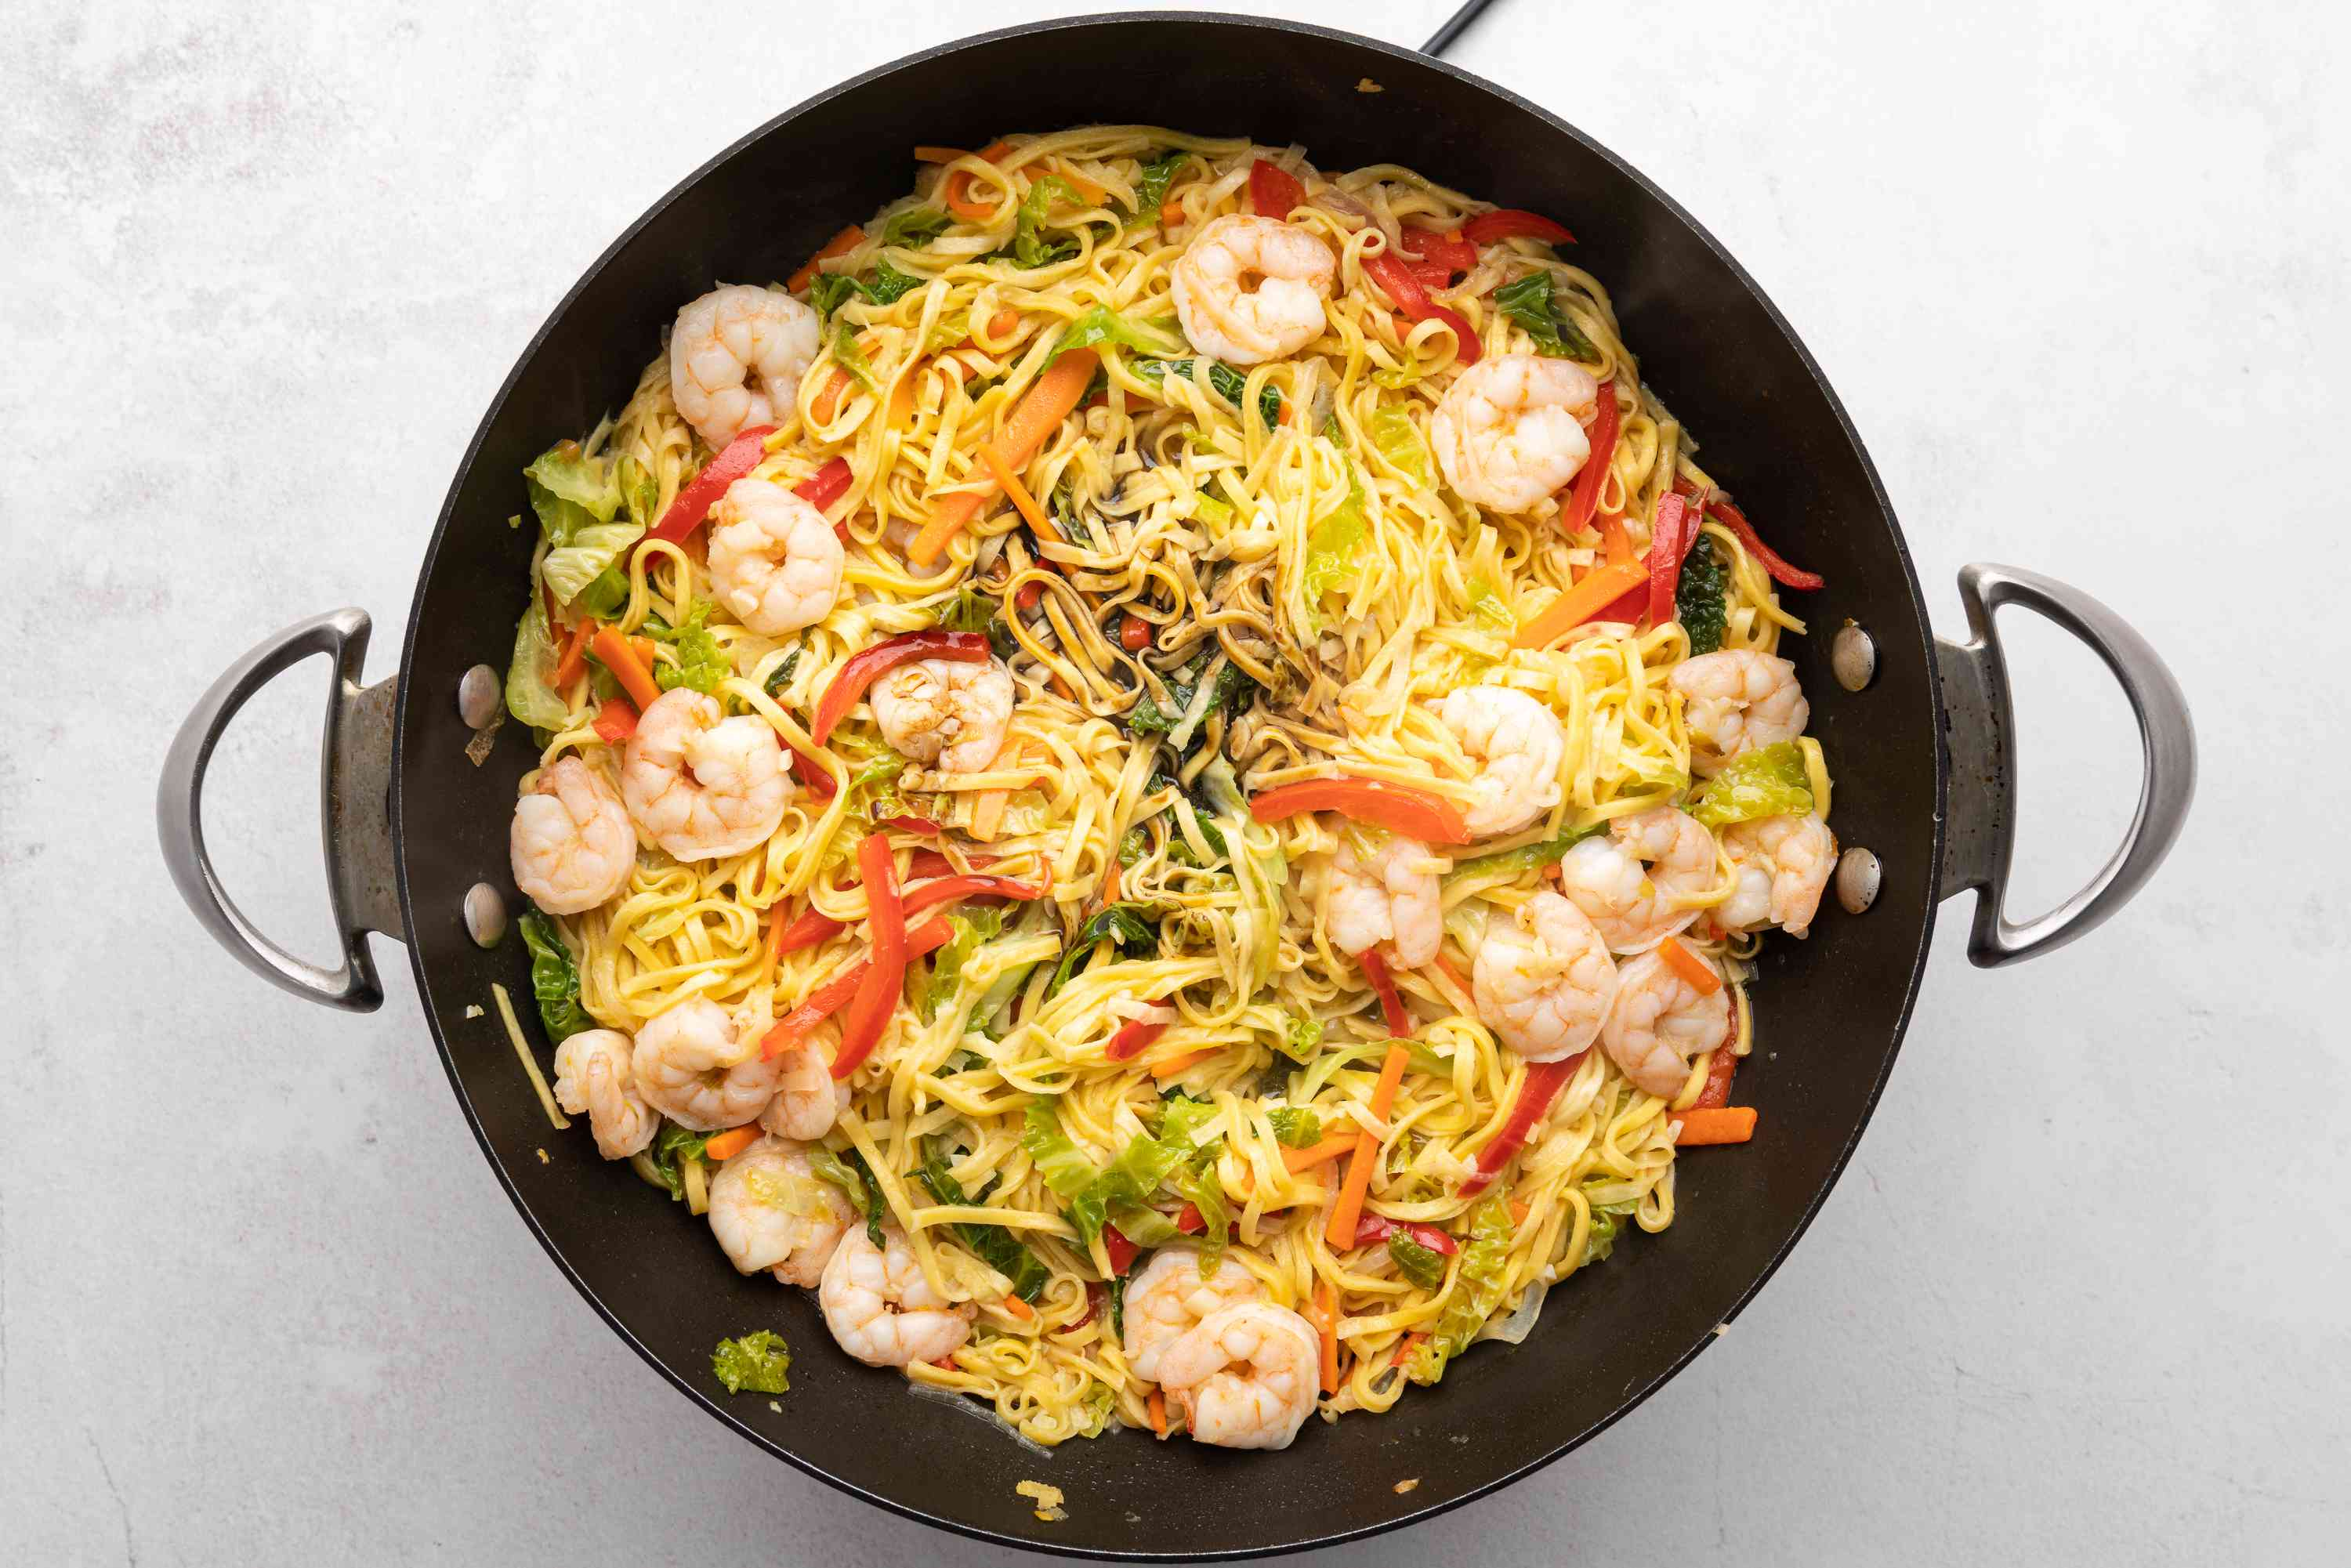 Traditional Filipino Pancit cooking in a wok